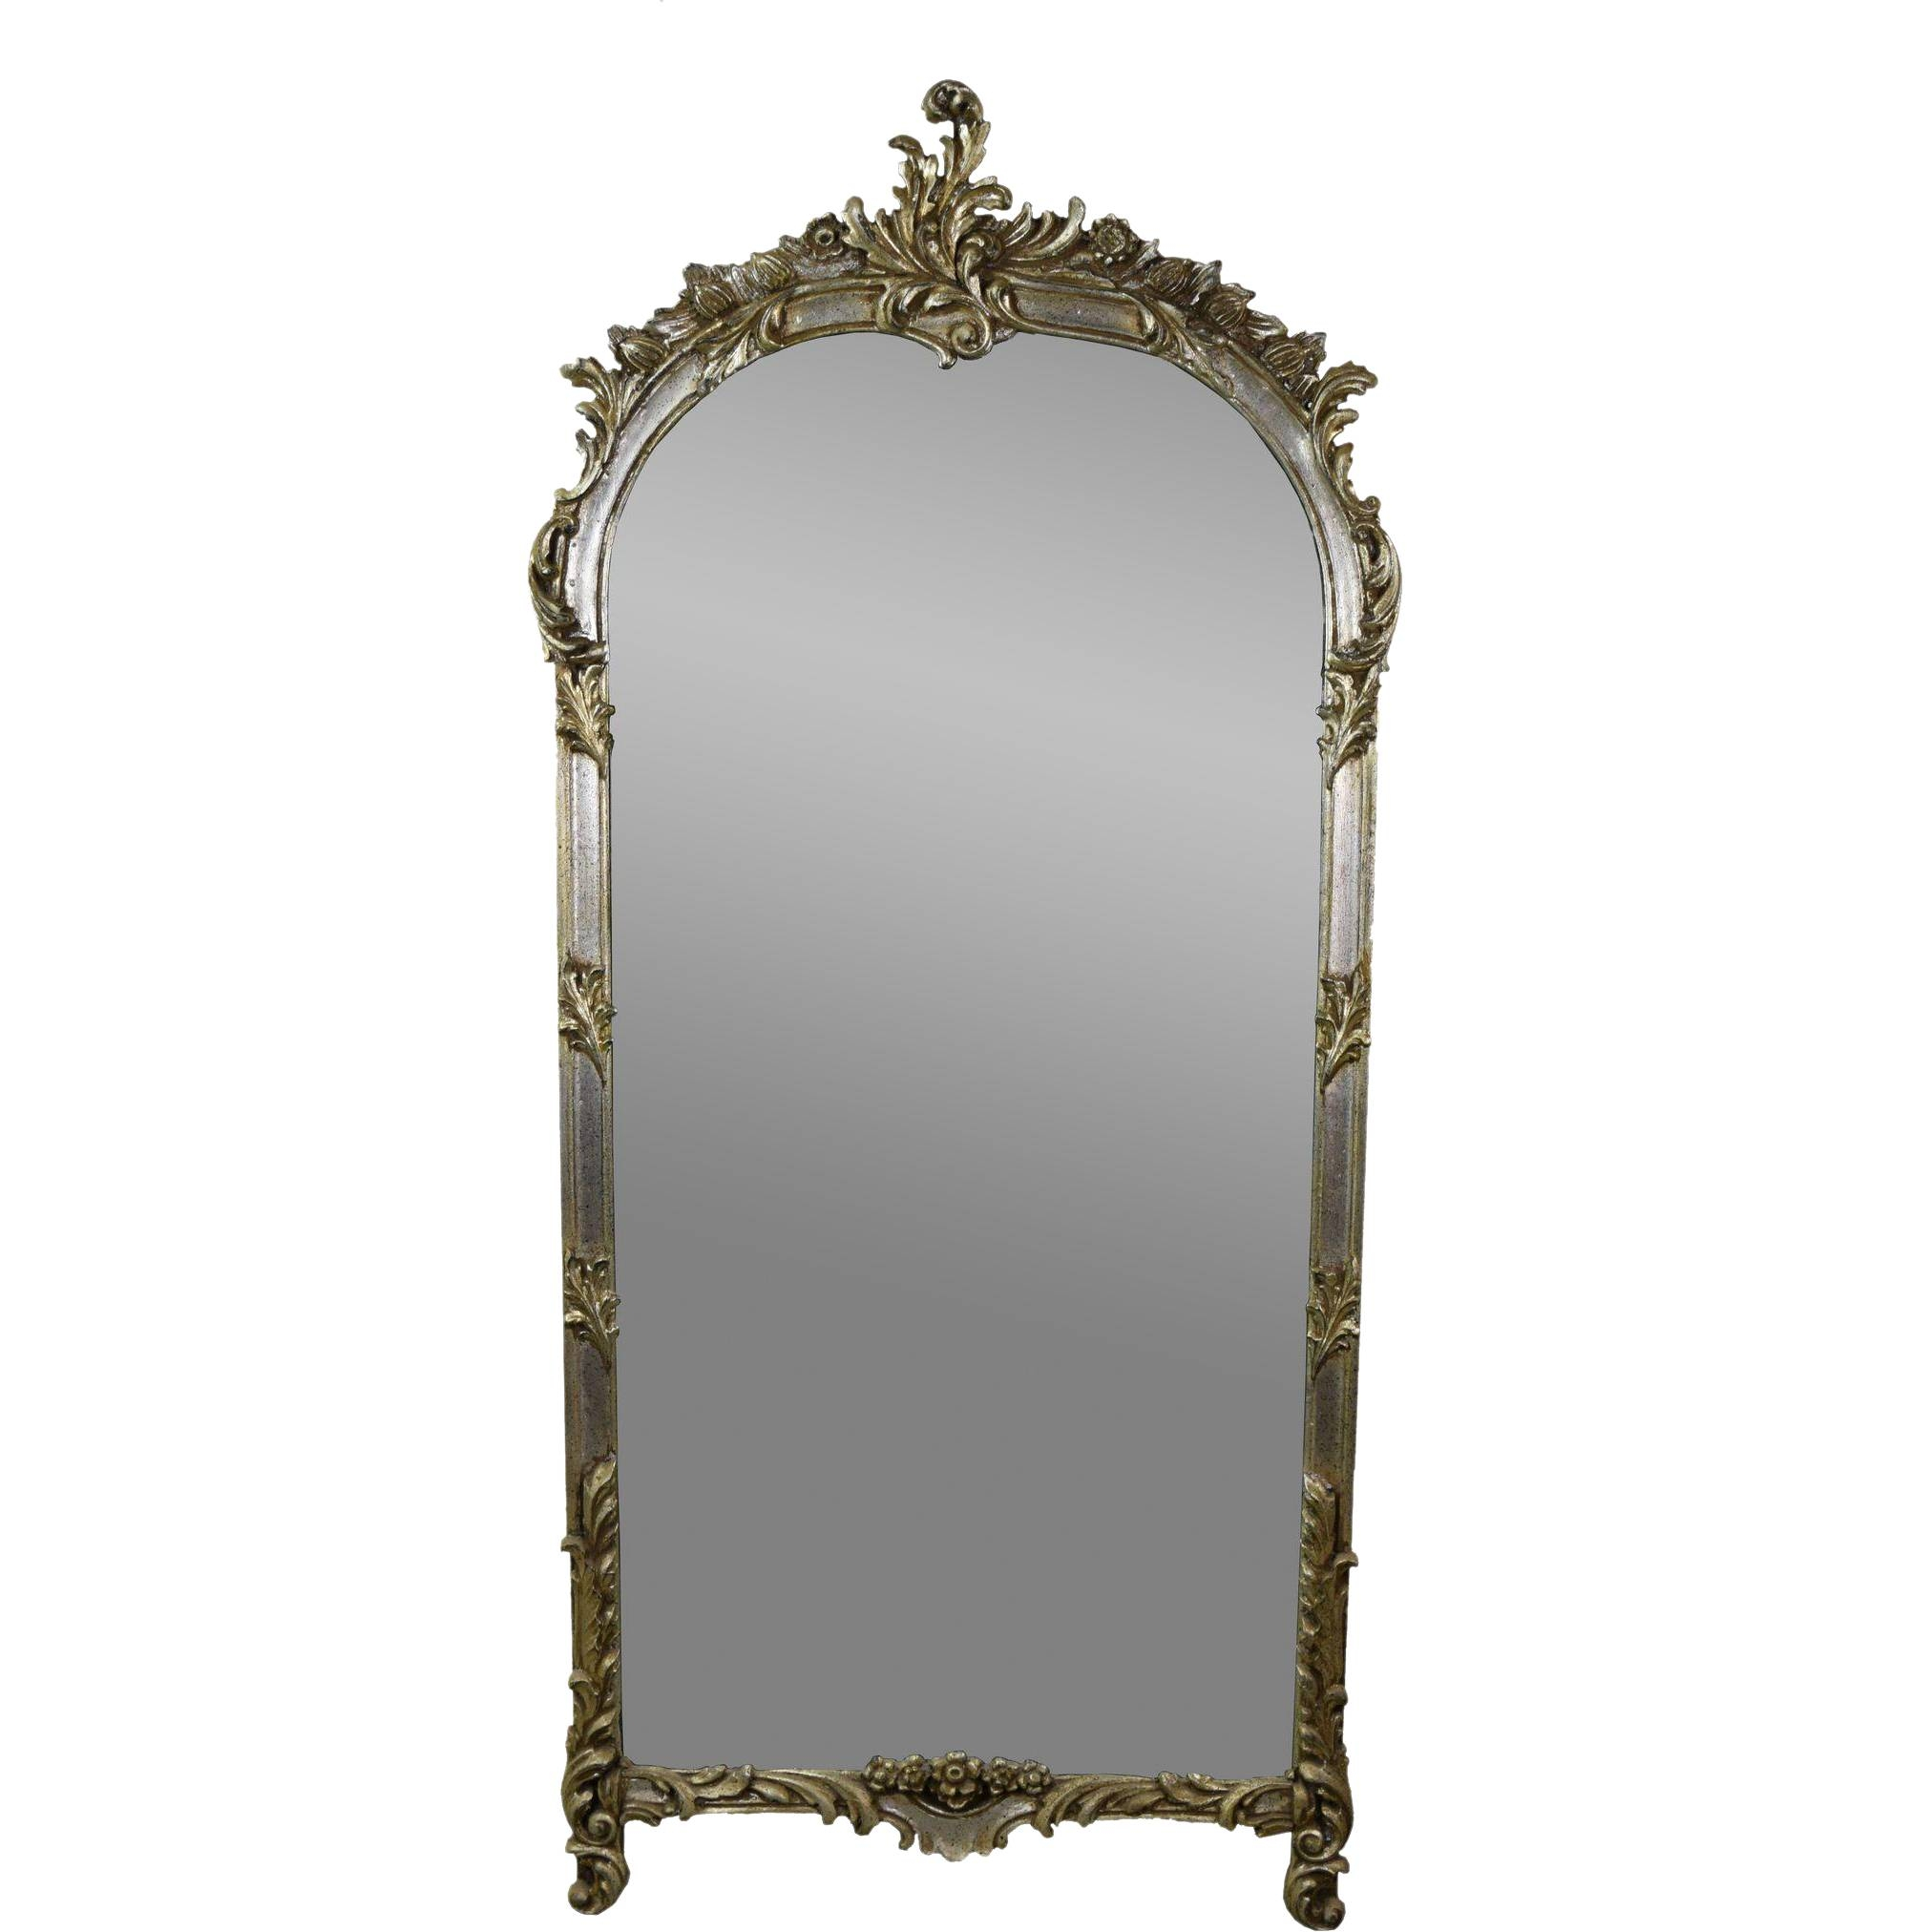 Vintage Labarge French Style Wall Pier Mirror W Silver Gilt with Antique Style Wall Mirrors (Image 25 of 25)